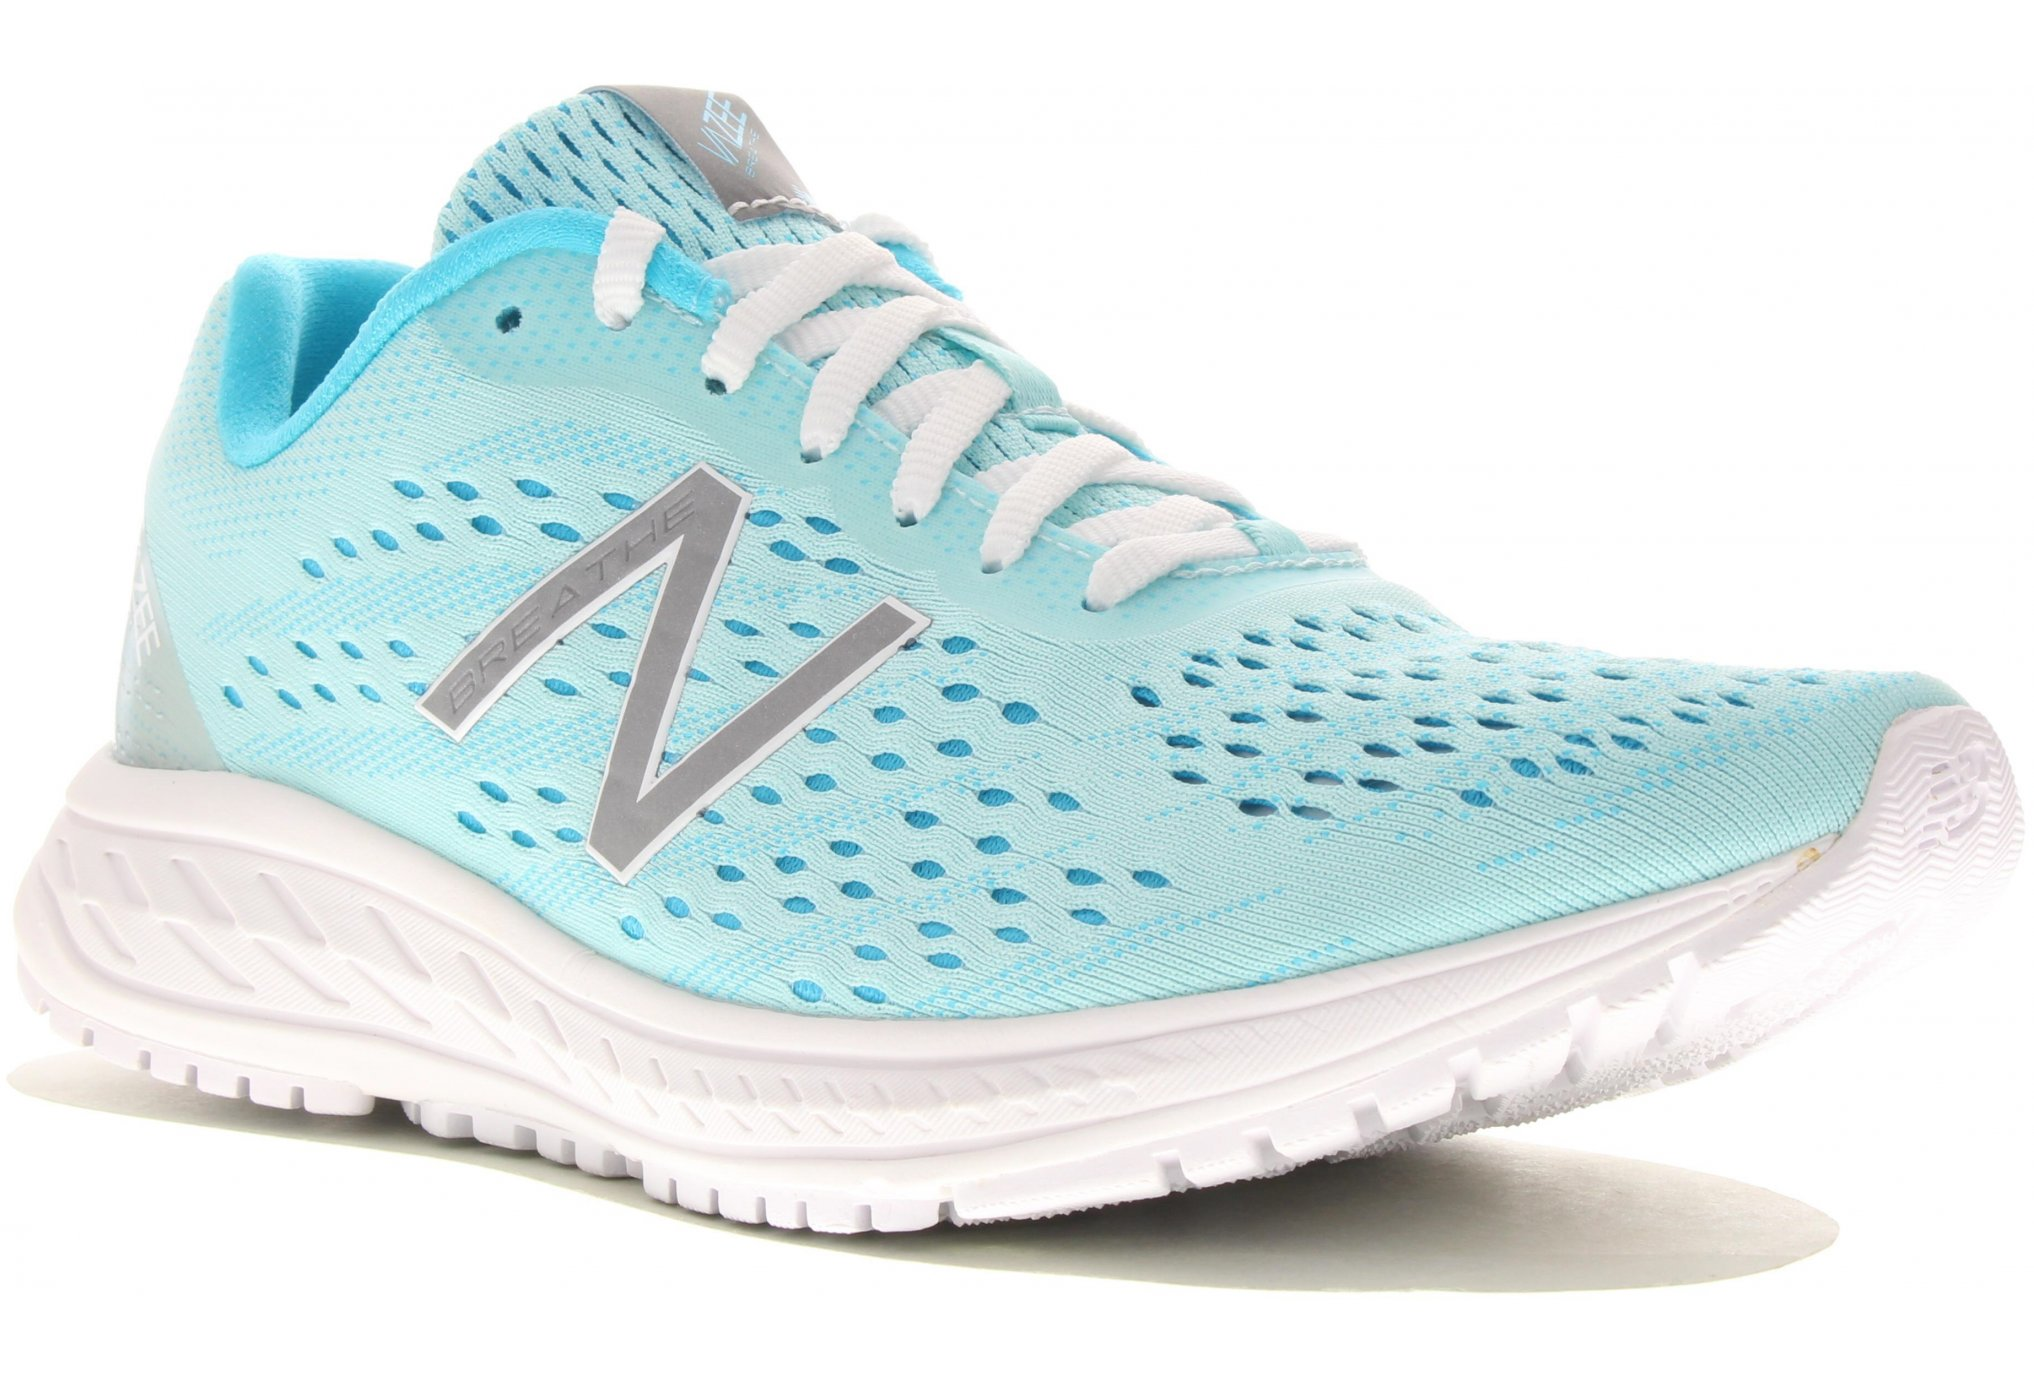 880 Chaussures Trail V6 Femme Balance Running New Session B W 7yfbg6